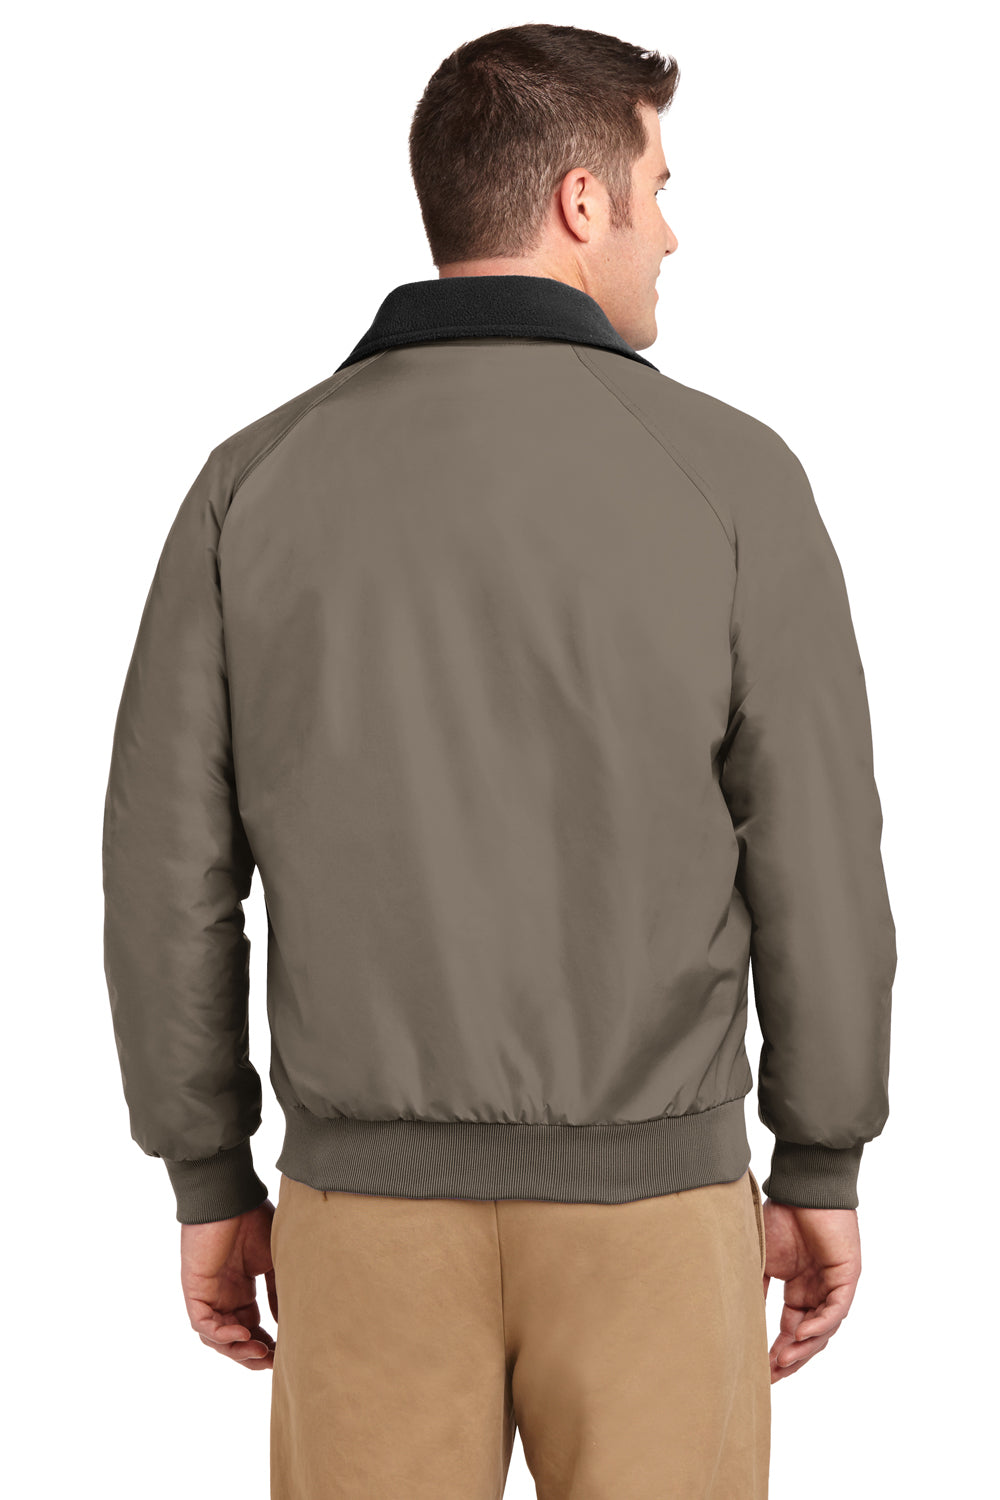 Port Authority J754 Mens Challenger Wind & Water Resistant Full Zip Jacket Khaki Brown Back